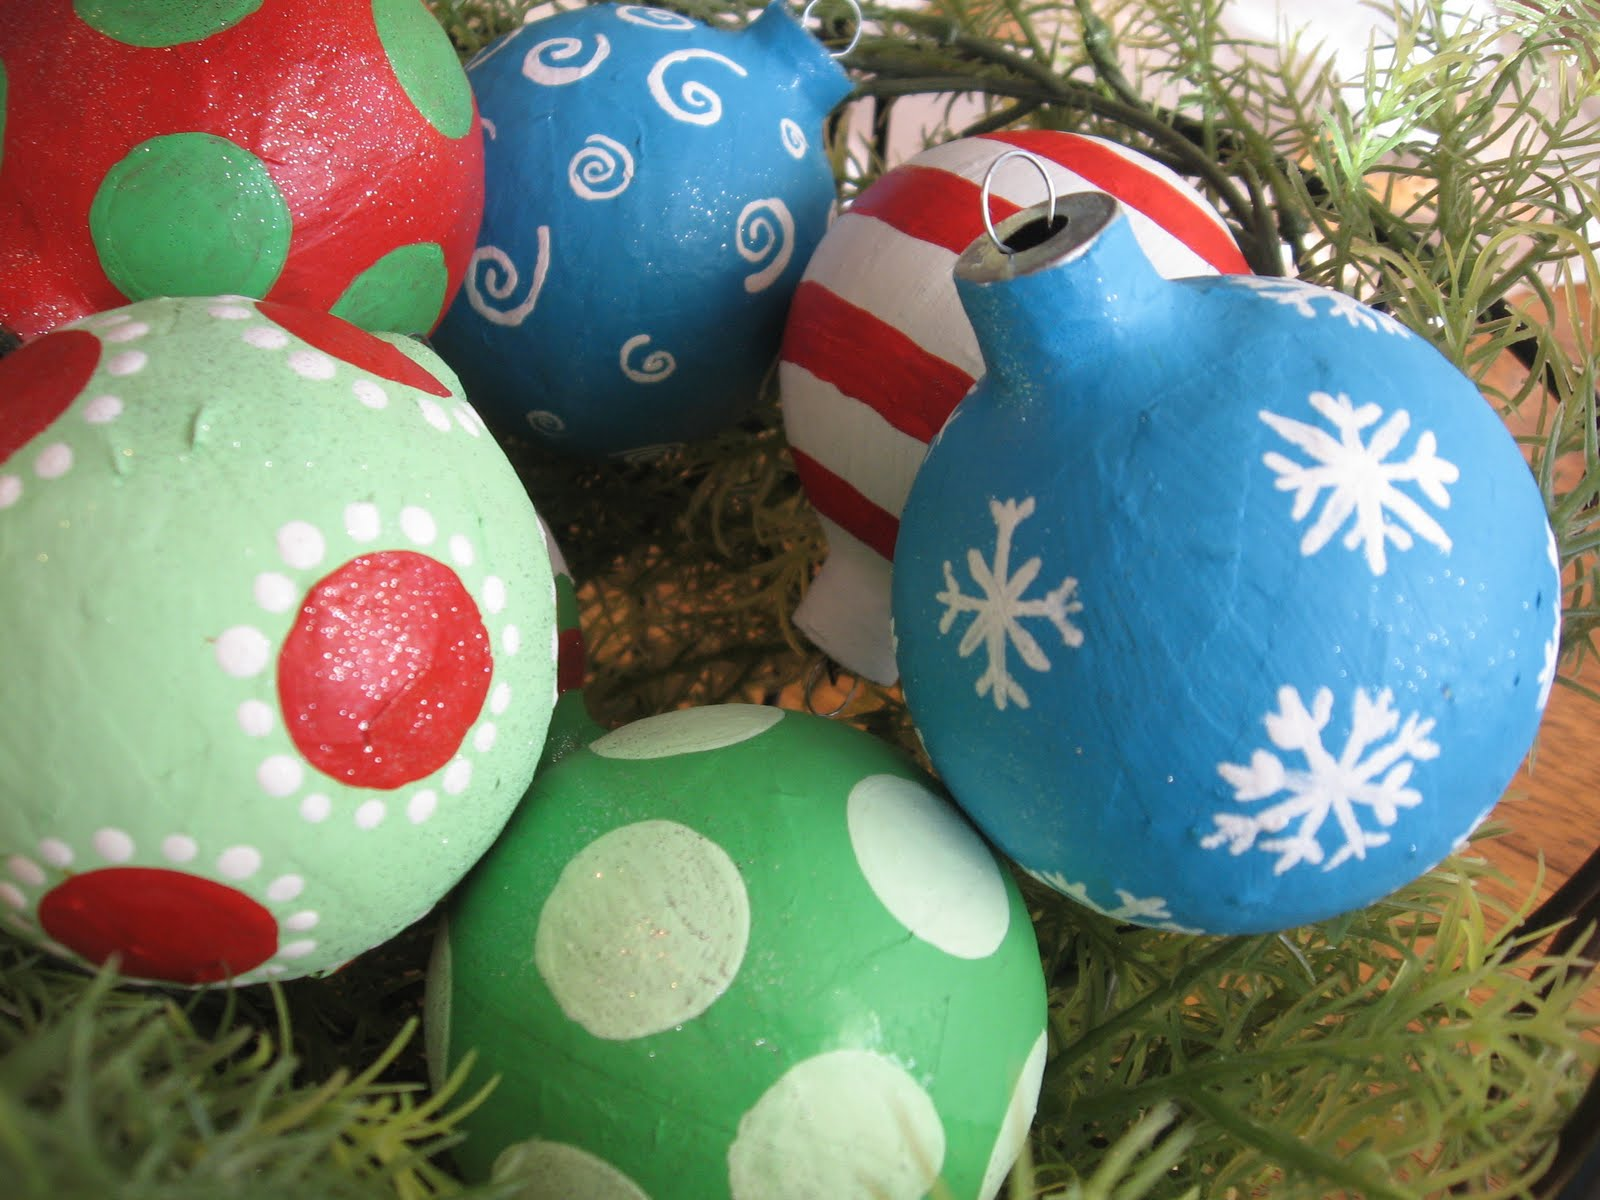 Paper christmas ornaments for toddlers - Chrismas Paper Mache Ornaments Blue Cricket Design